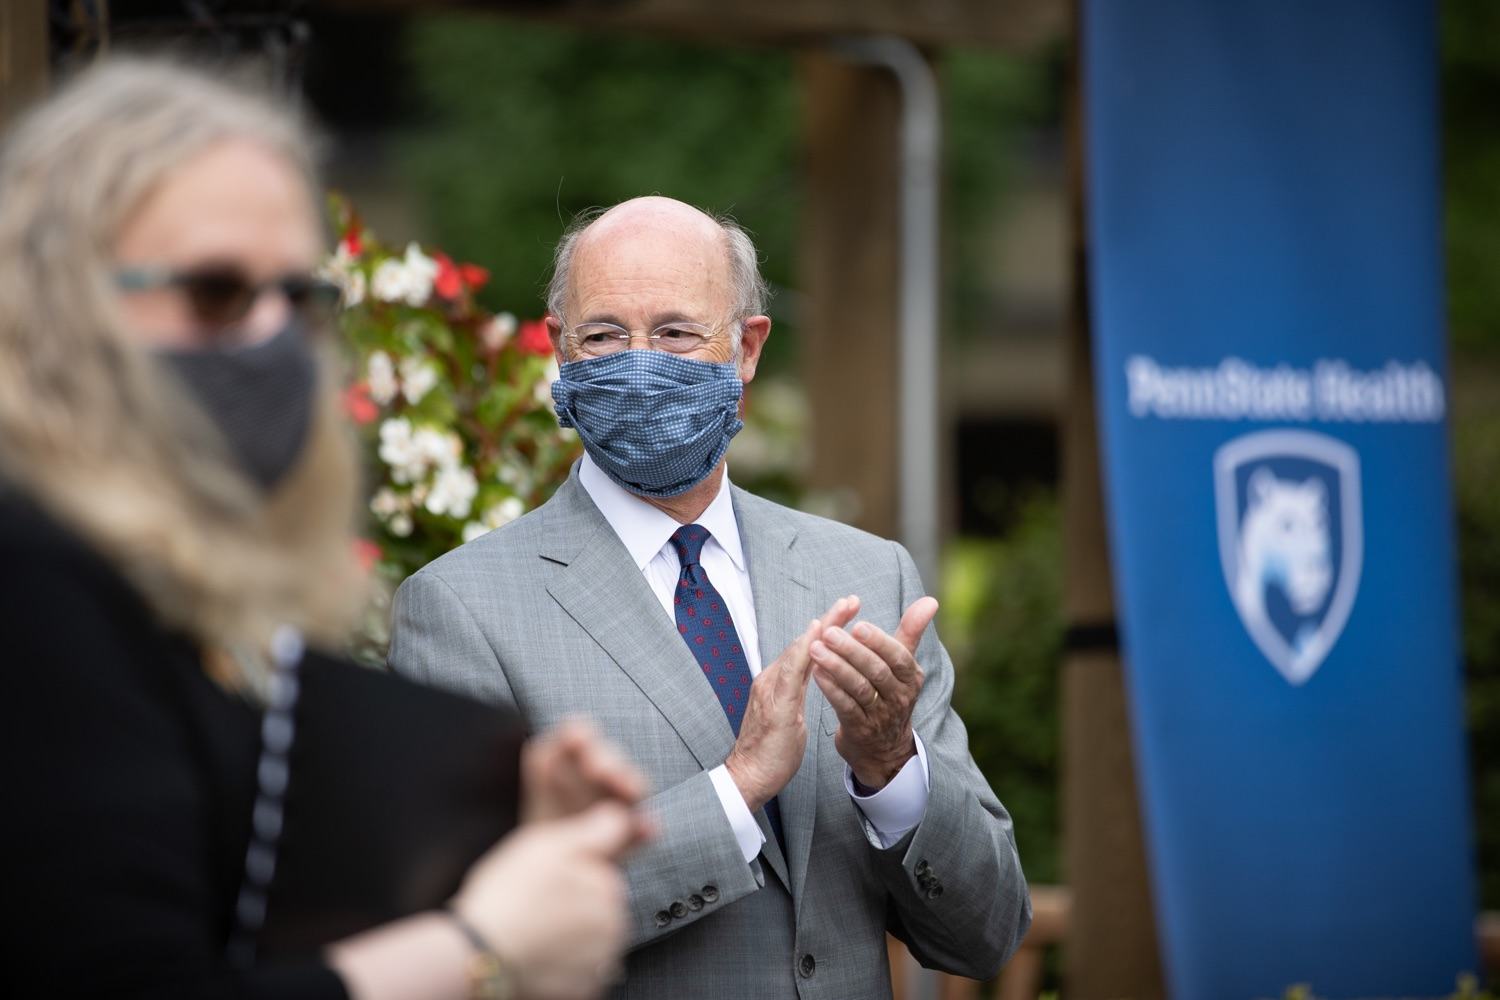 "<a href=""https://filesource.wostreaming.net/commonwealthofpa/photo/18093_gov-healthcare_workers_dz_10.jpg"" target=""_blank"">⇣ Download Photo<br></a>Pennsylvania Governor Tom Wolf listening to speakers during his visit to Milton S. Hershey Medical Center.  As the commonwealth continues its measured, phased reopening and COVID-19 case counts continue to decline, Governor Tom Wolf visited Penn State Milton S. Hershey Medical Center today to thank staff and learn more about how the facility is handling the pandemic and preparing for a possible resurgence in the fall.  Harrisburg, PA  June 24, 2020"